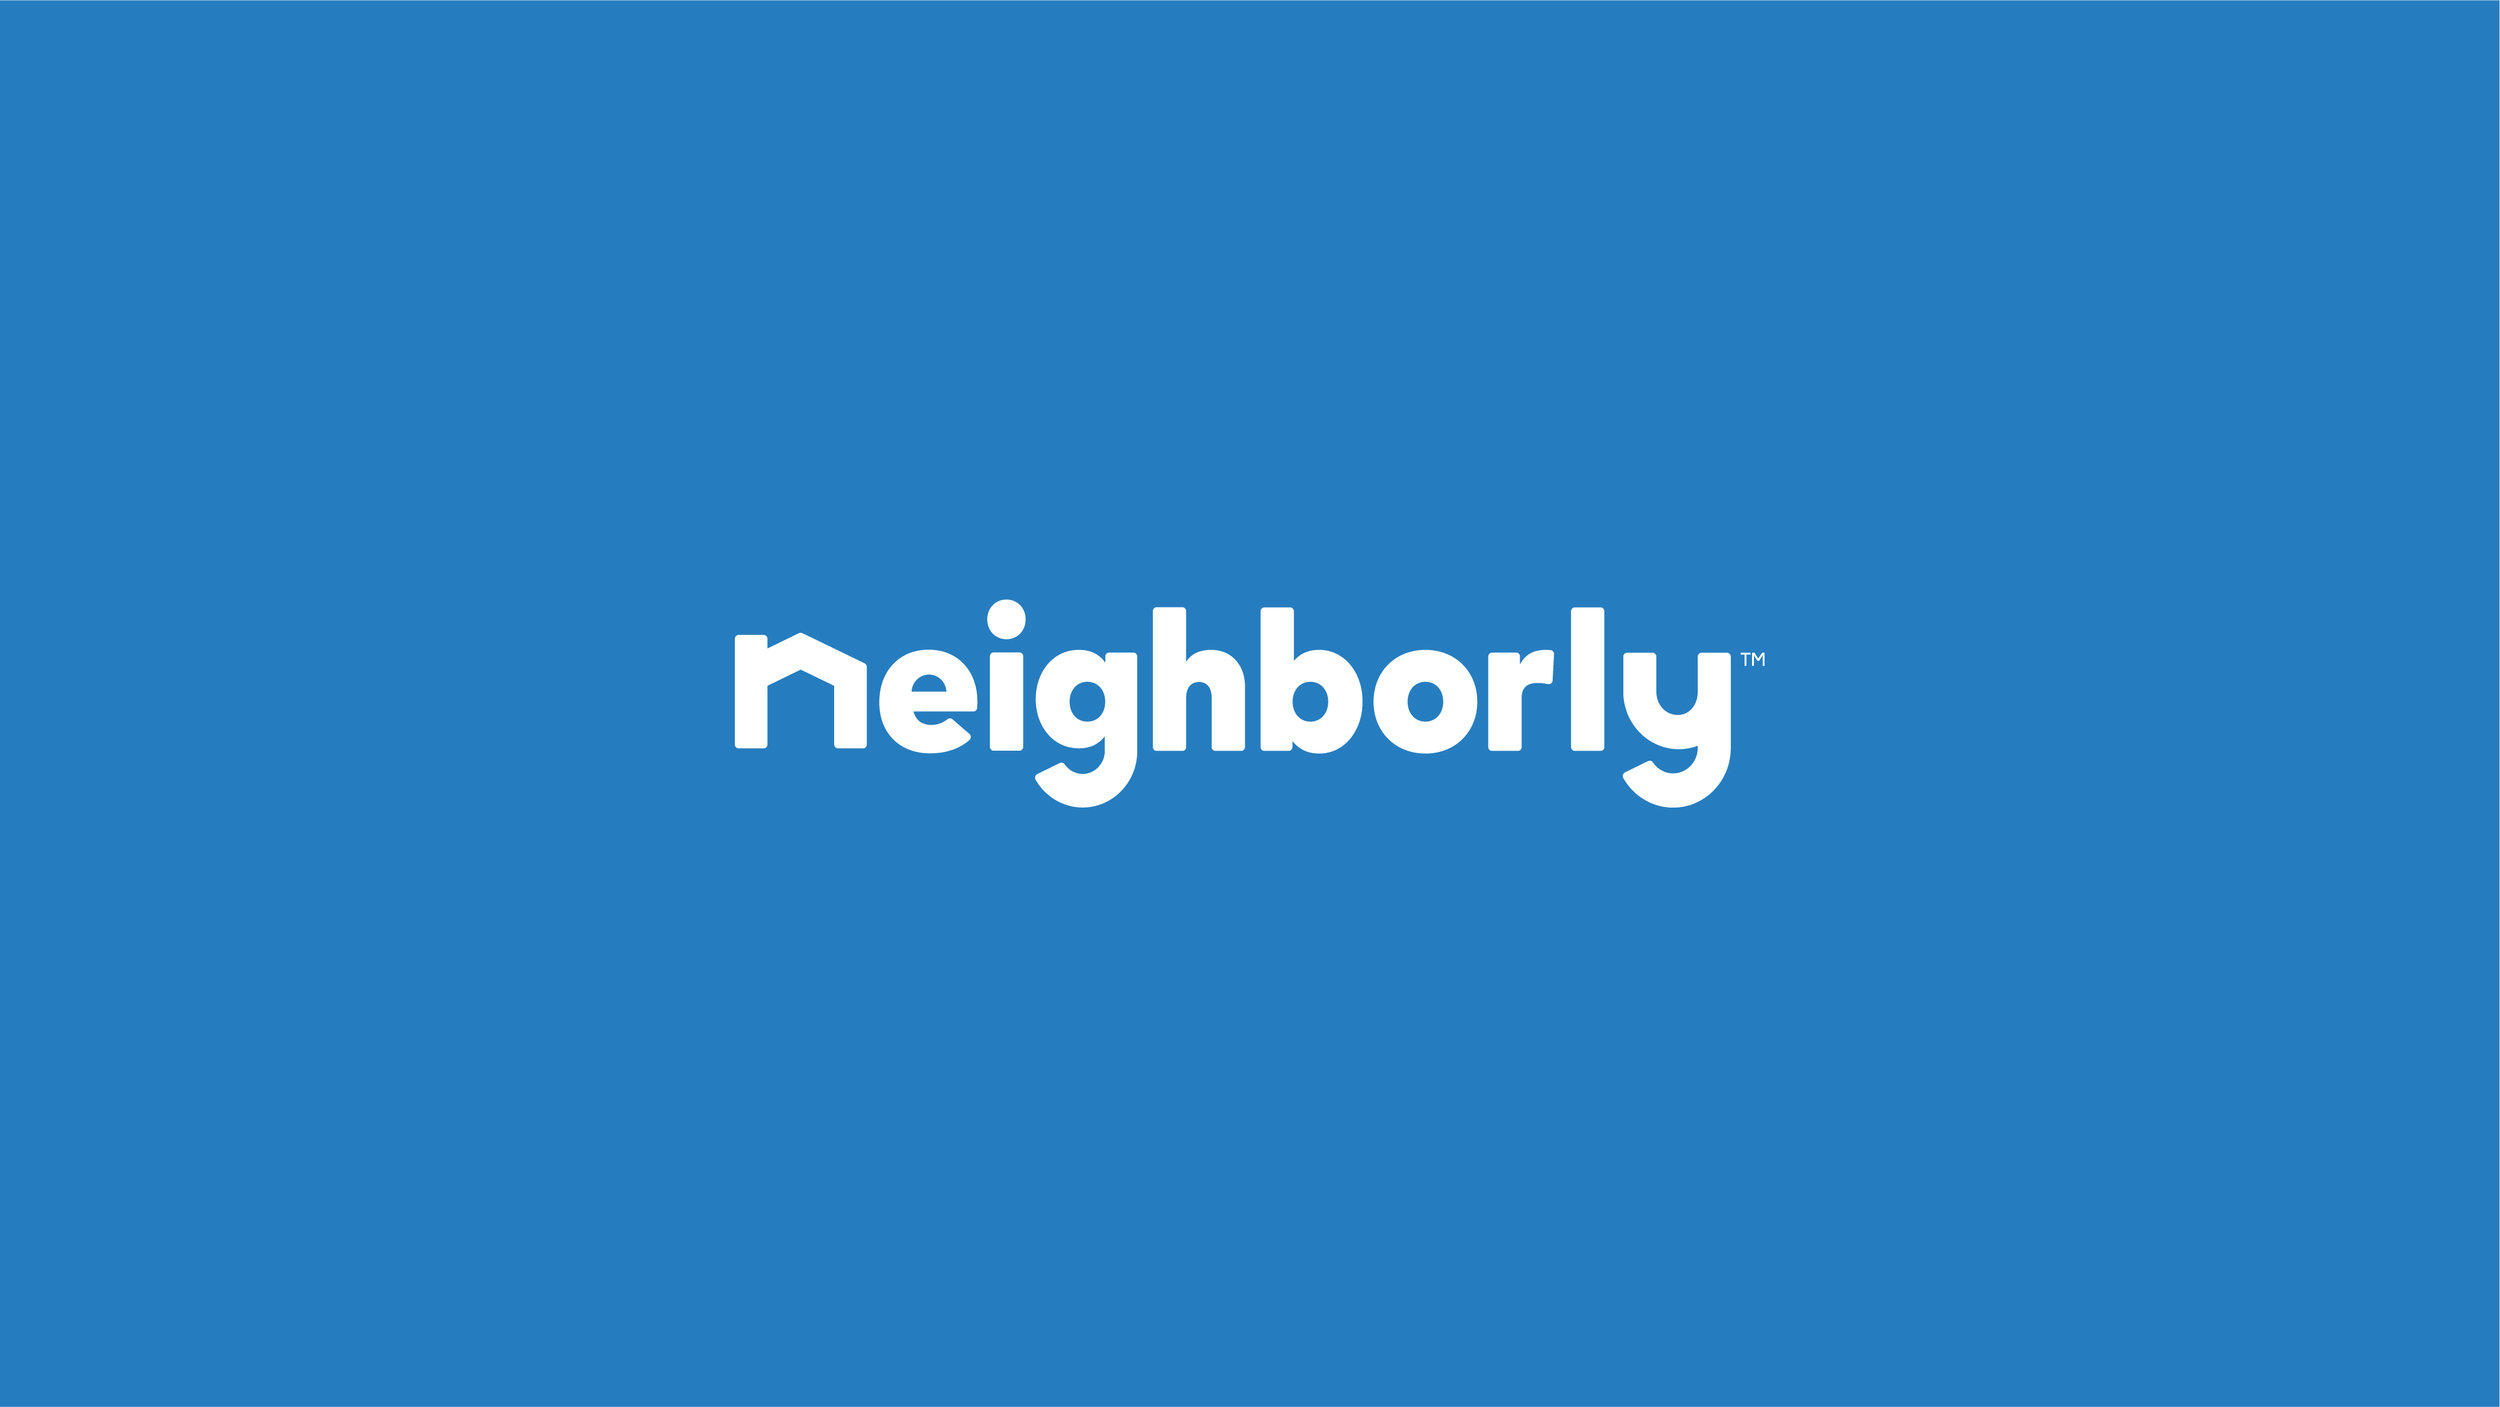 Neighborly_DesignPresentation_FINAL_Hero-White.jpg